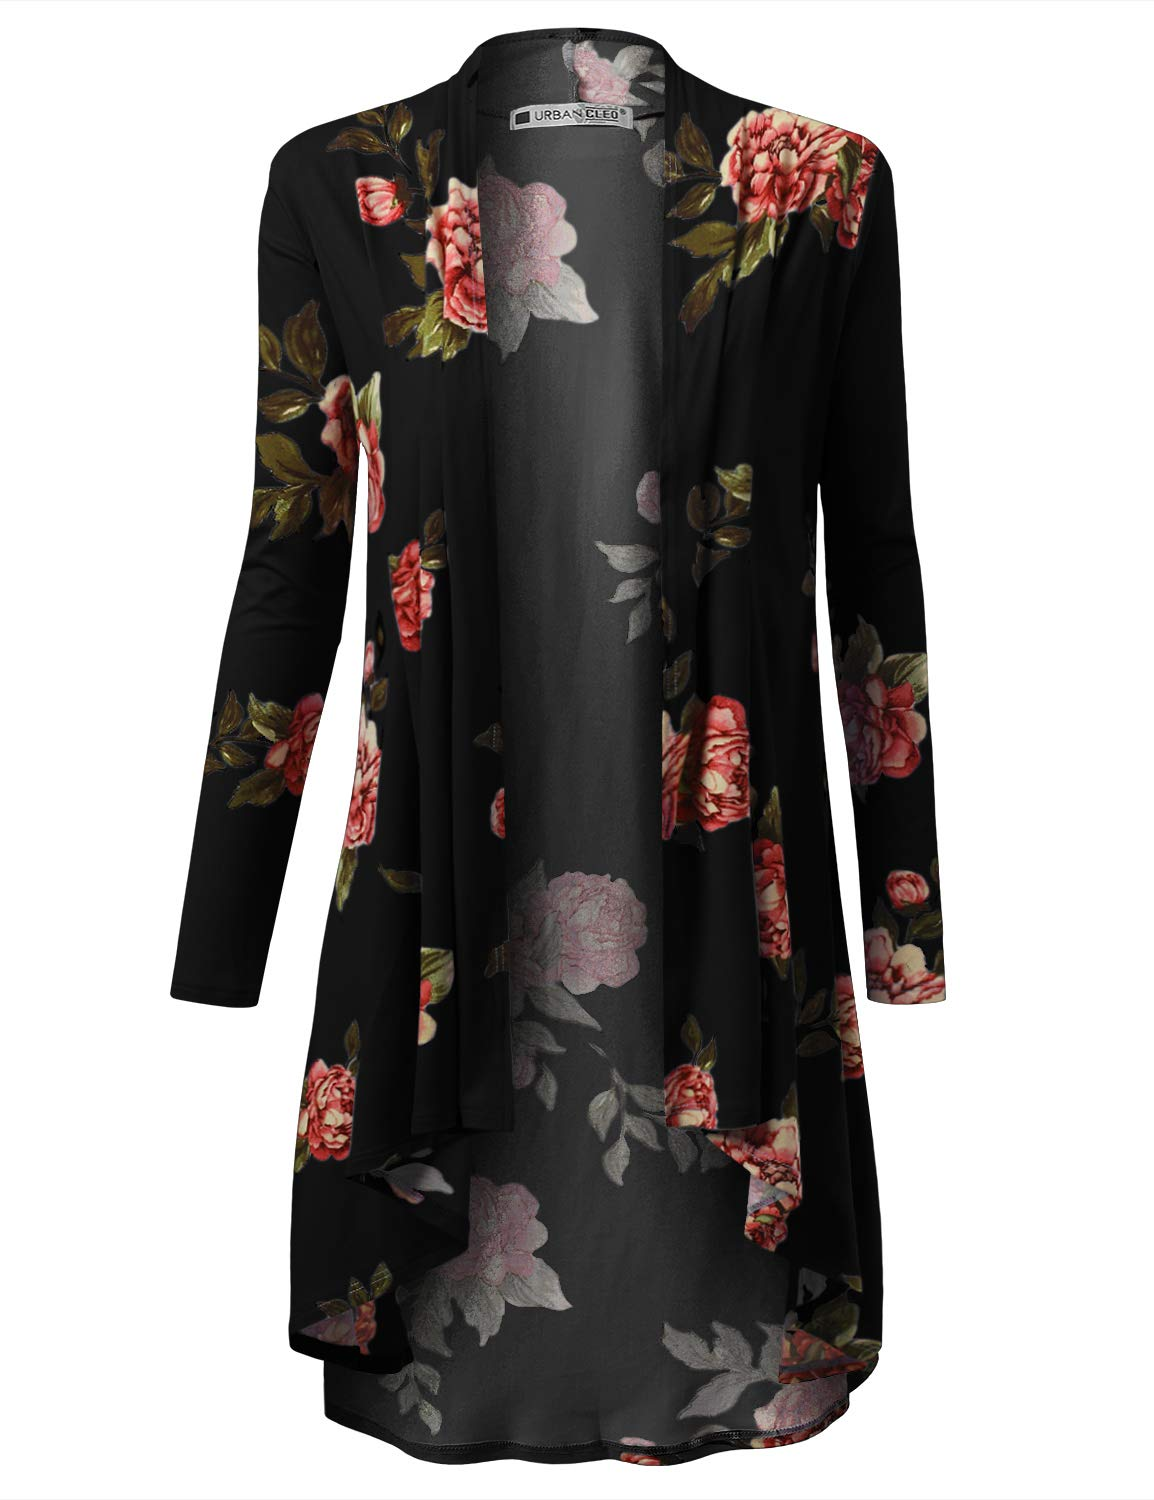 URBANCLEO Womens Floral Hi-Lo Open Front Long Cardigan Black, XL by URBANCLEO